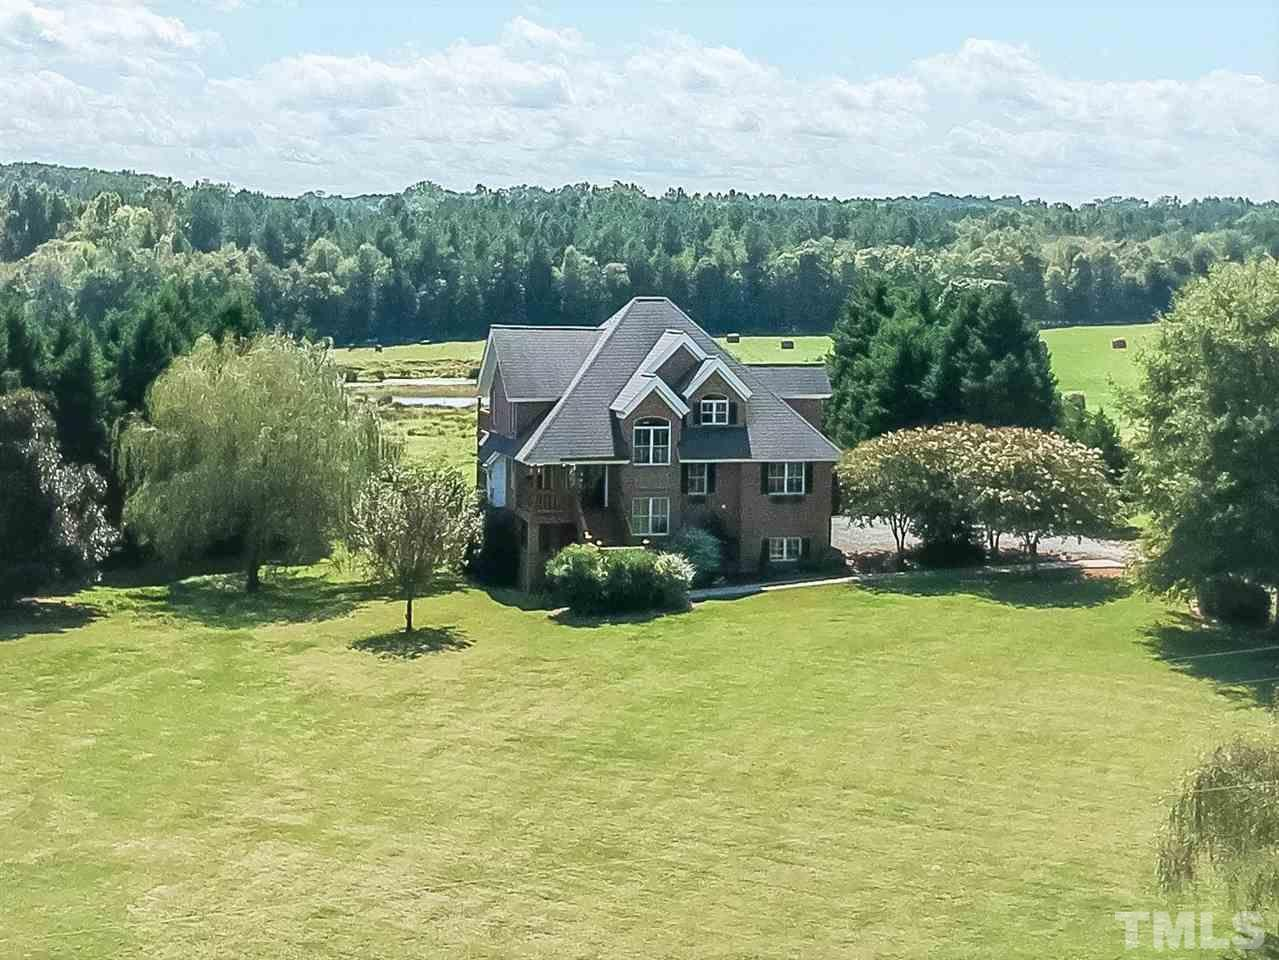 Property for sale at 4123 Schley Road, Hillsborough,  NC 27278